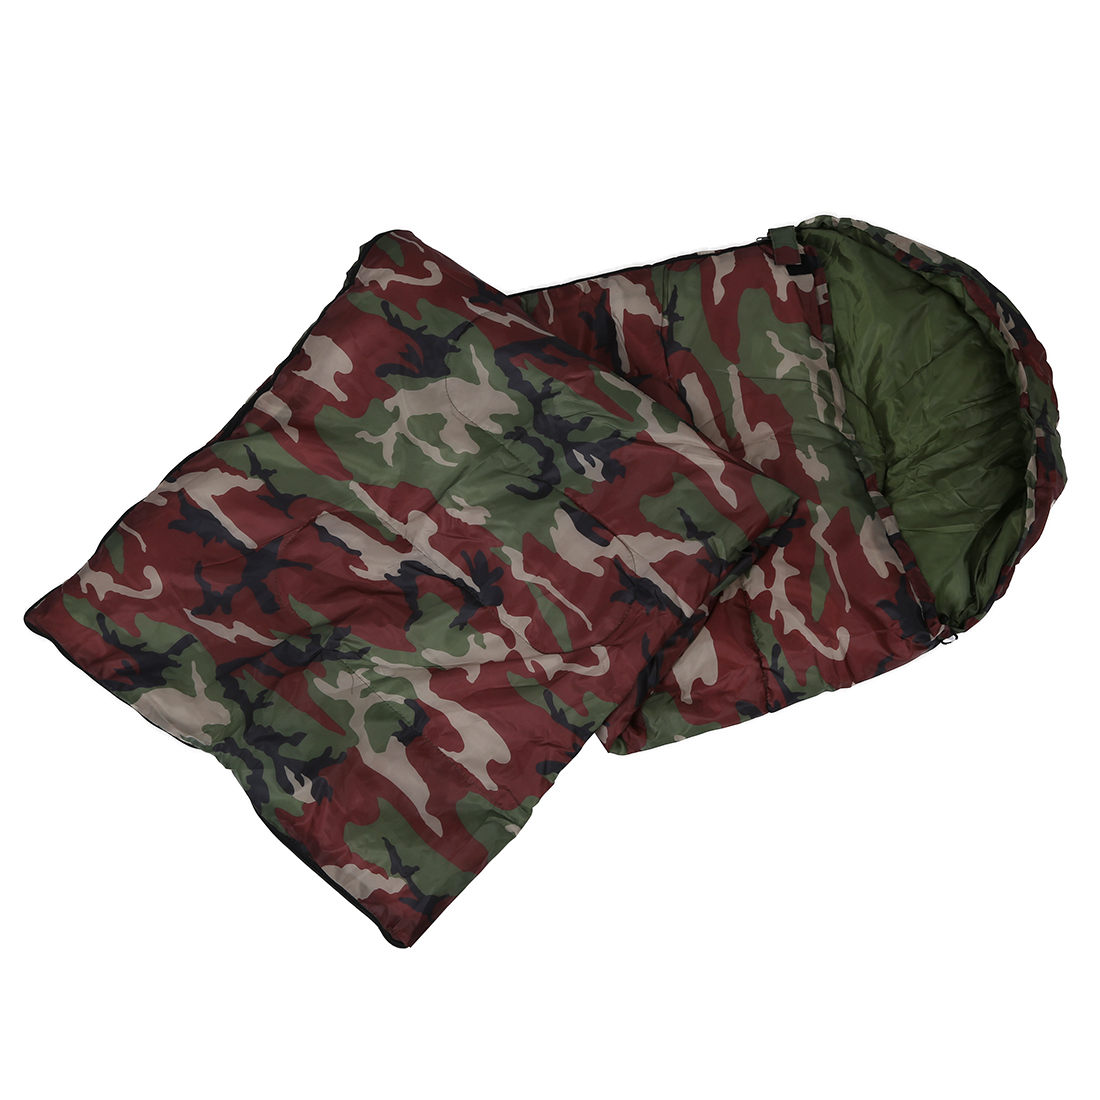 Envelope Style Army Or Military Or Camouflage Sleeping Bags High Quality Cotton Camping Sleeping Bag,15-5 Degree